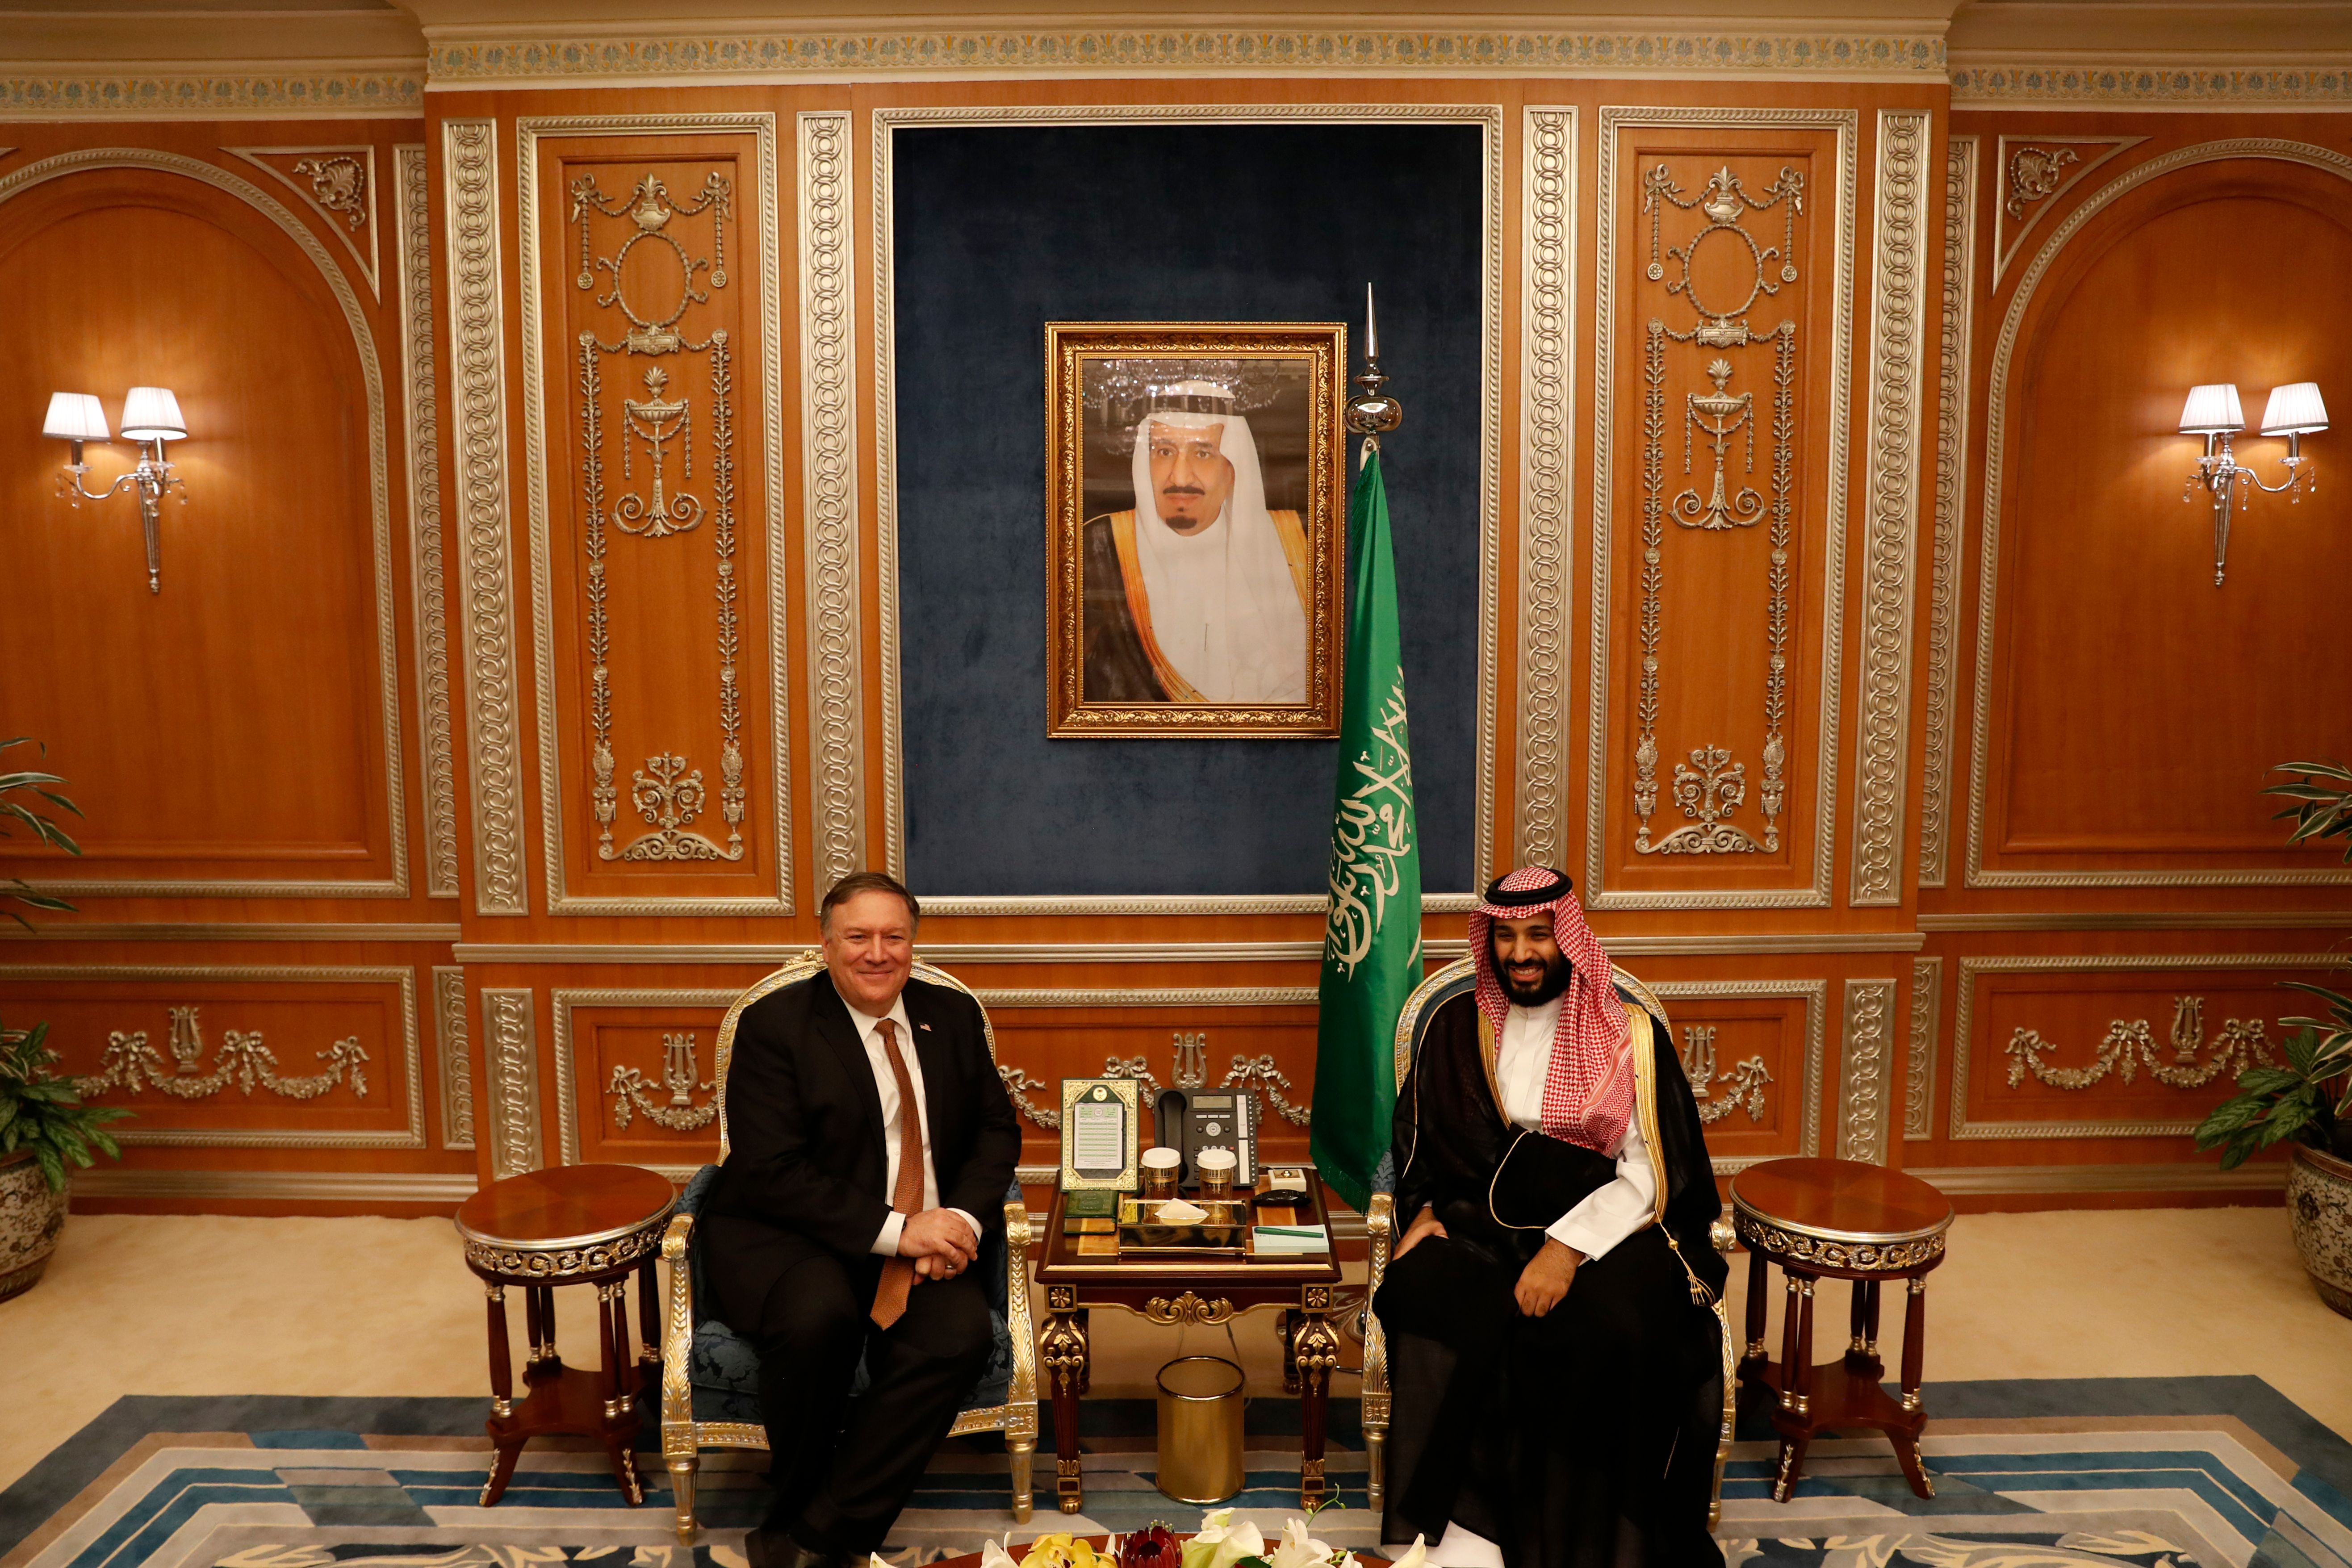 US Secretary of State Mike Pompeo (L) meets with Saudi Crown Prince Mohammed bin Salman in Riyadh, on October 16, 2018. - Pompeo held talks with Saudi King Salman seeking answers about the disappearance of journalist Jamal Khashoggi, amid US media reports the kingdom may be mulling an admission he died during a botched interrogation. (Photo by LEAH MILLIS / POOL / AFP)